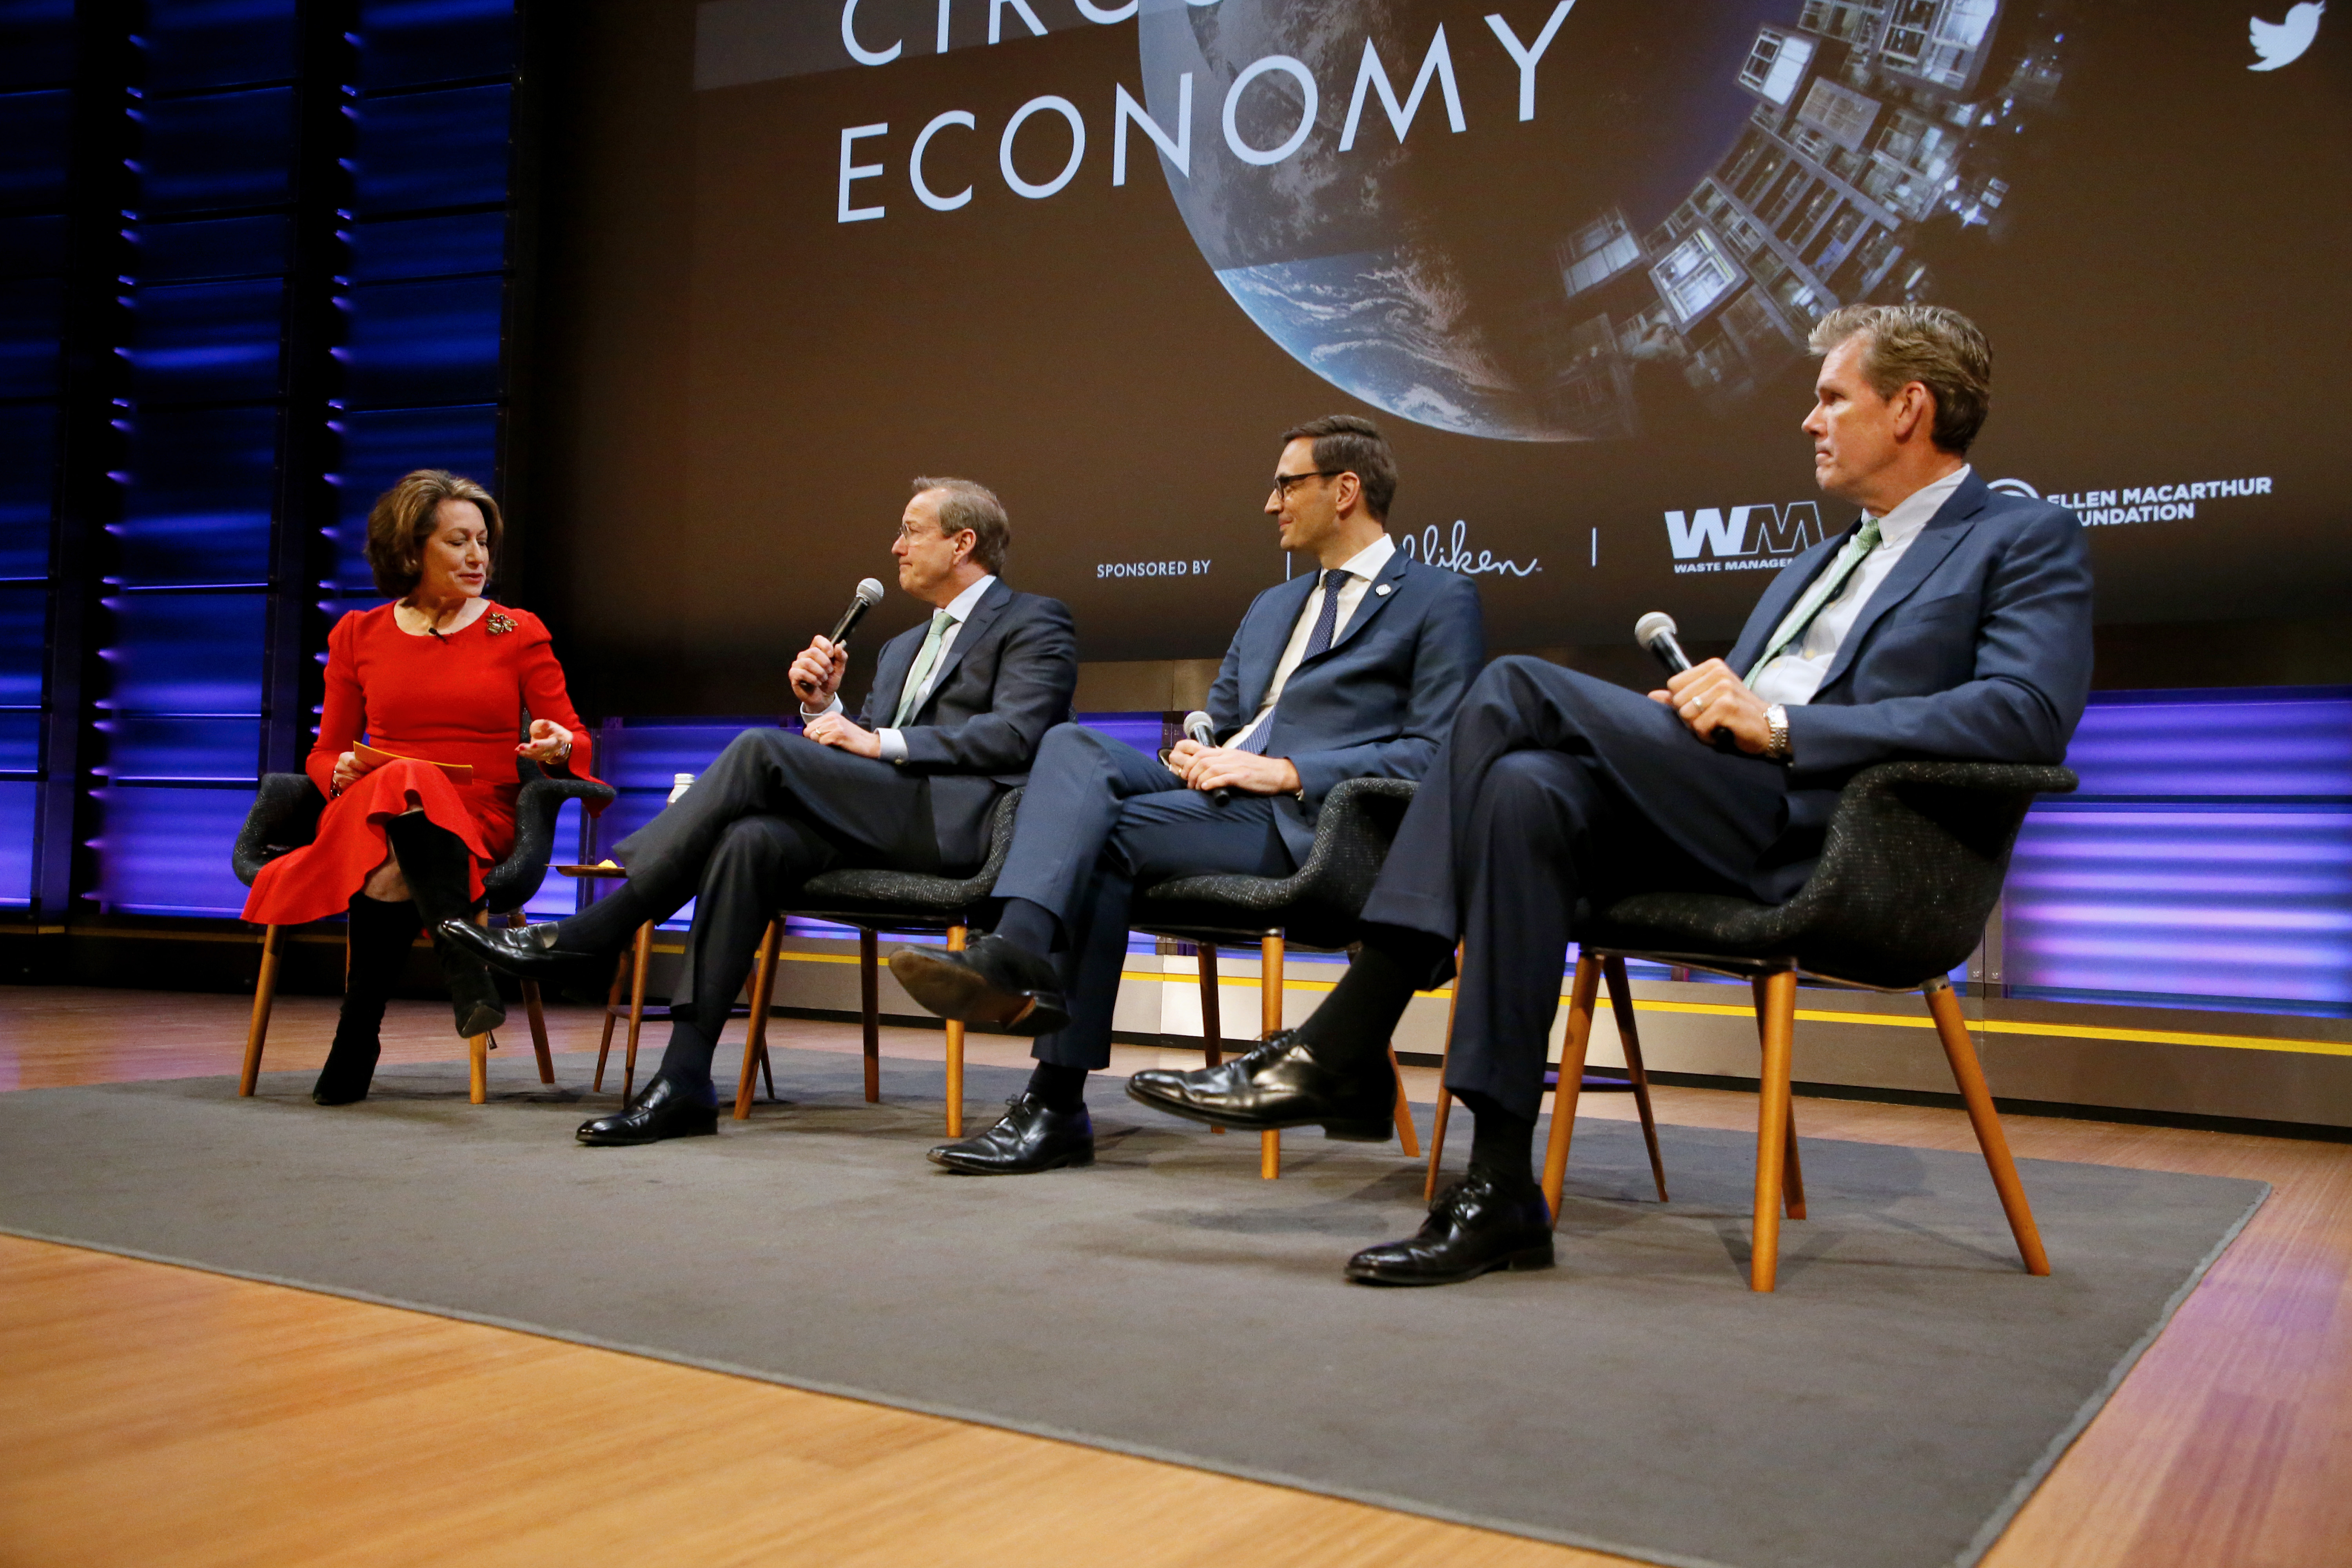 Leading Disruption CEO panel at the National Geographic Circular Economy Forum. © Milliken.